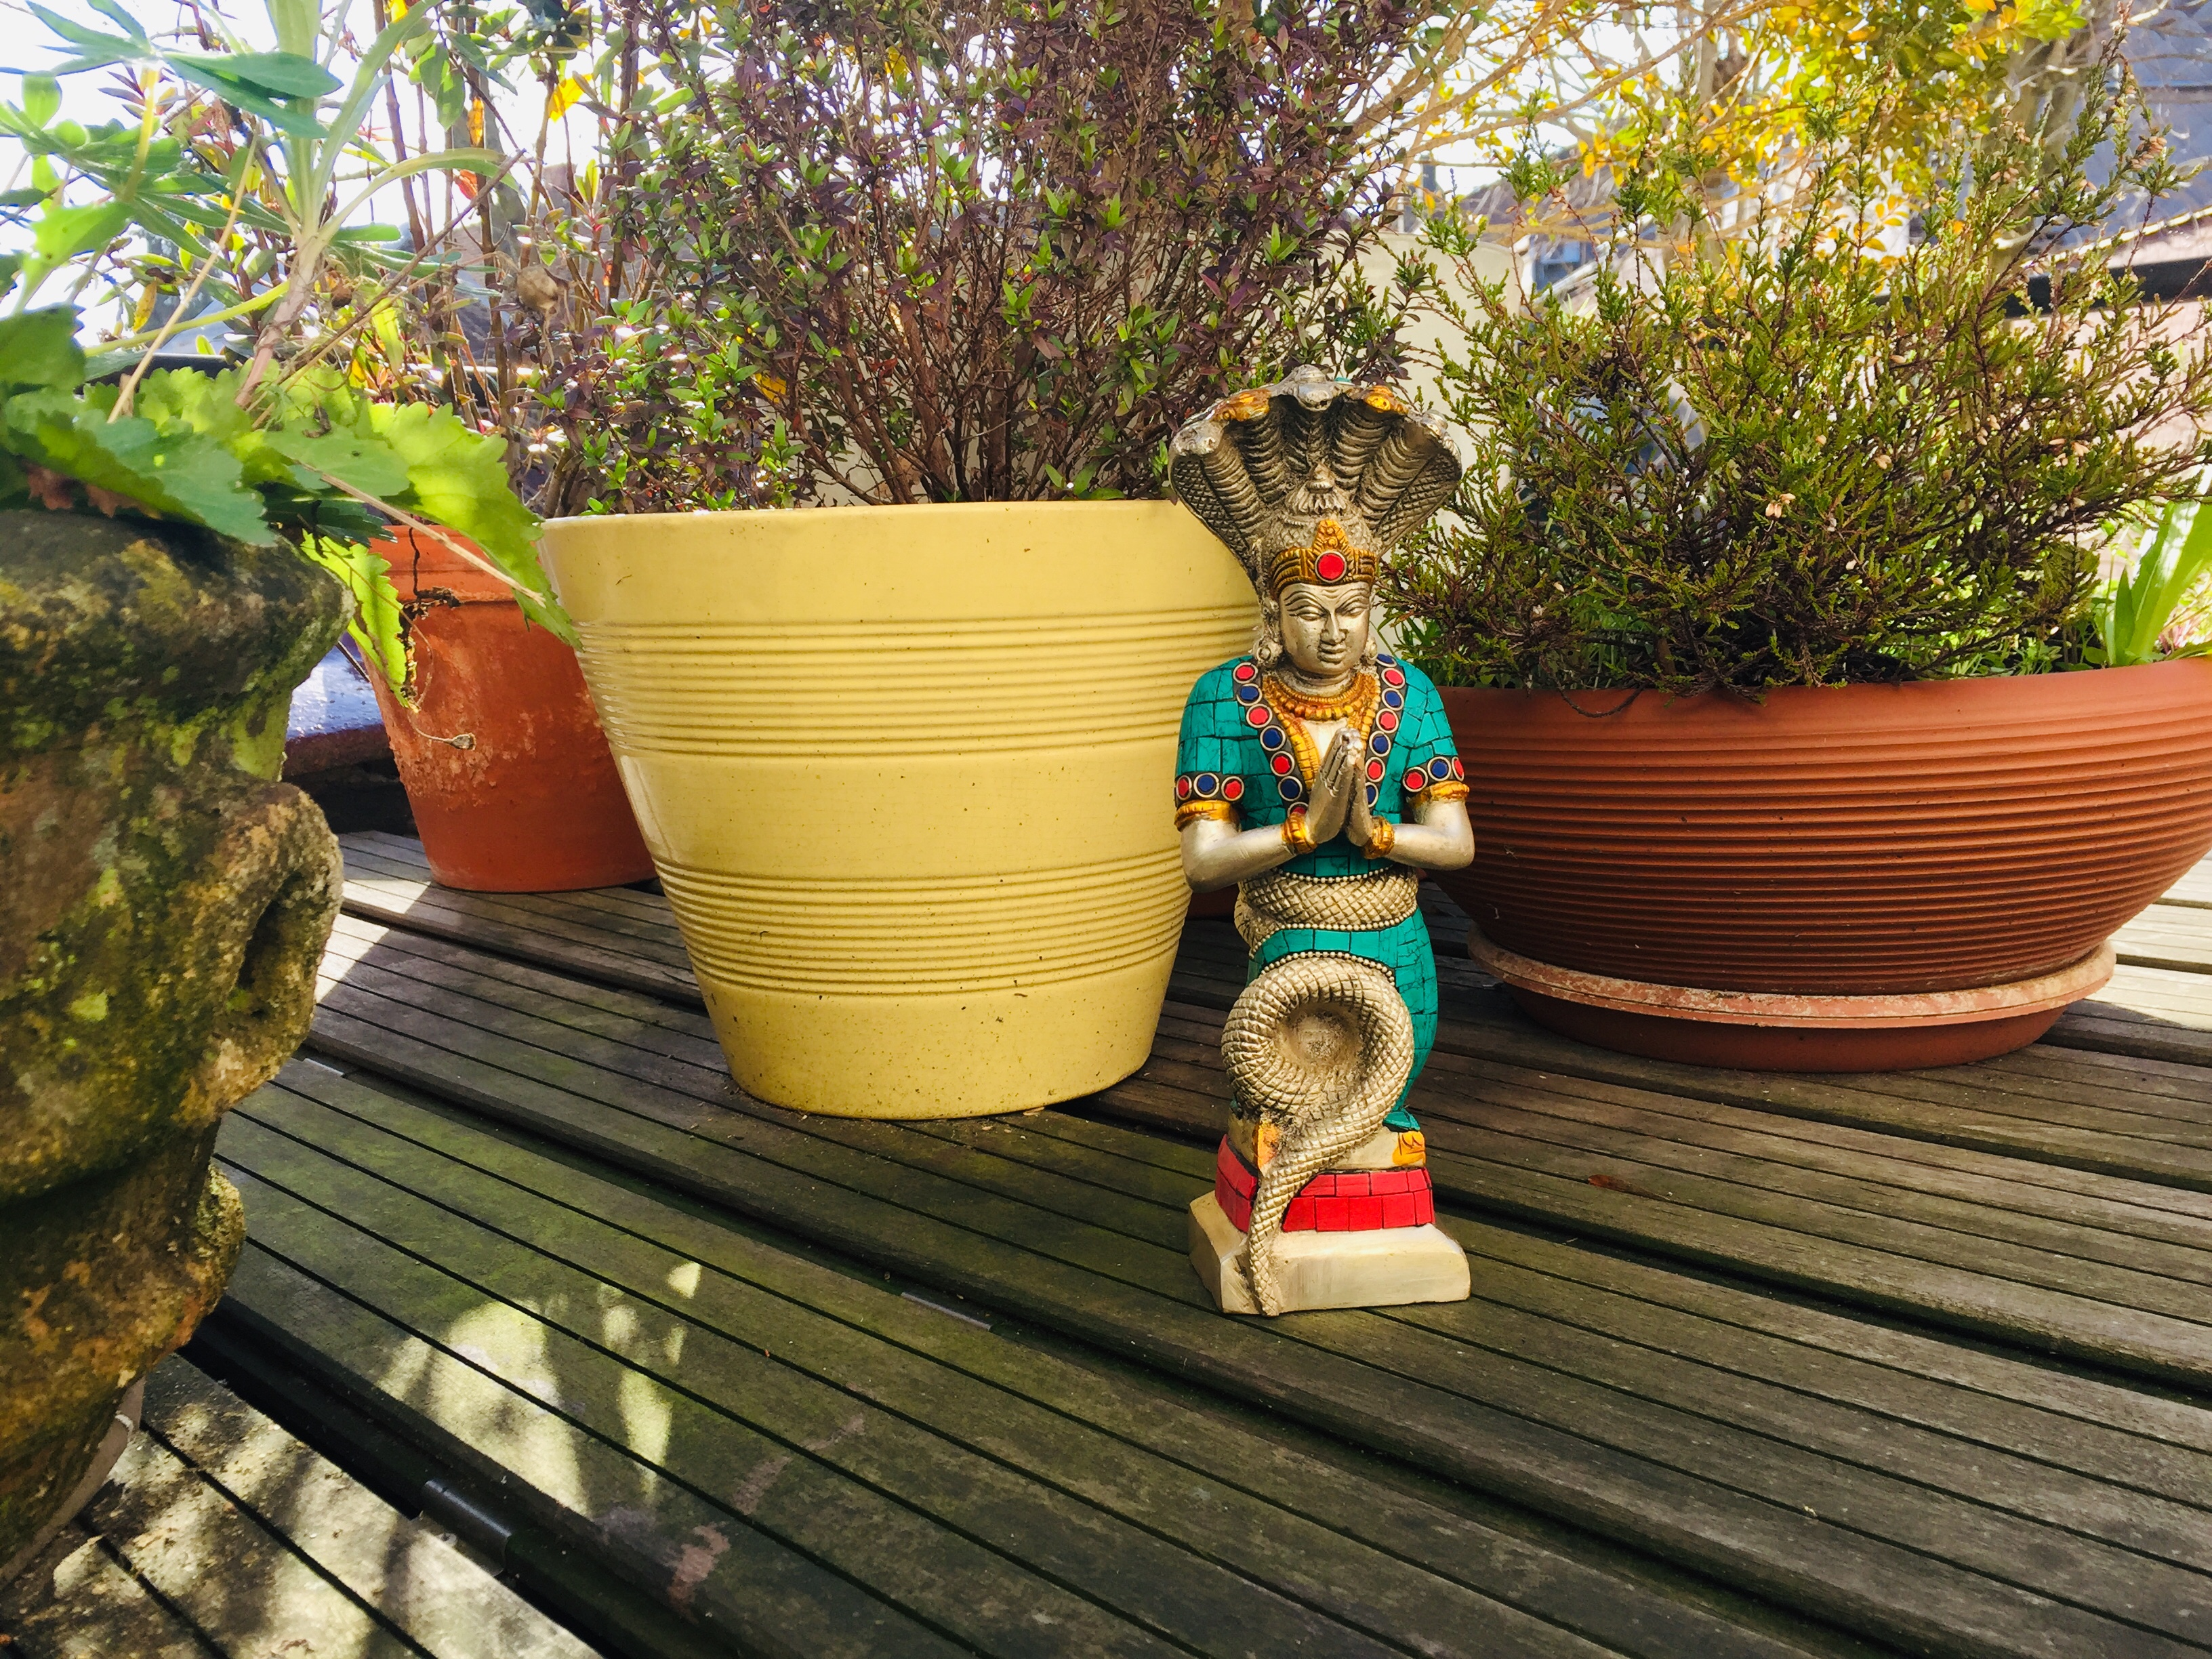 Patanjali Statue on the terrace of a yoga studio with plants in pots in the back